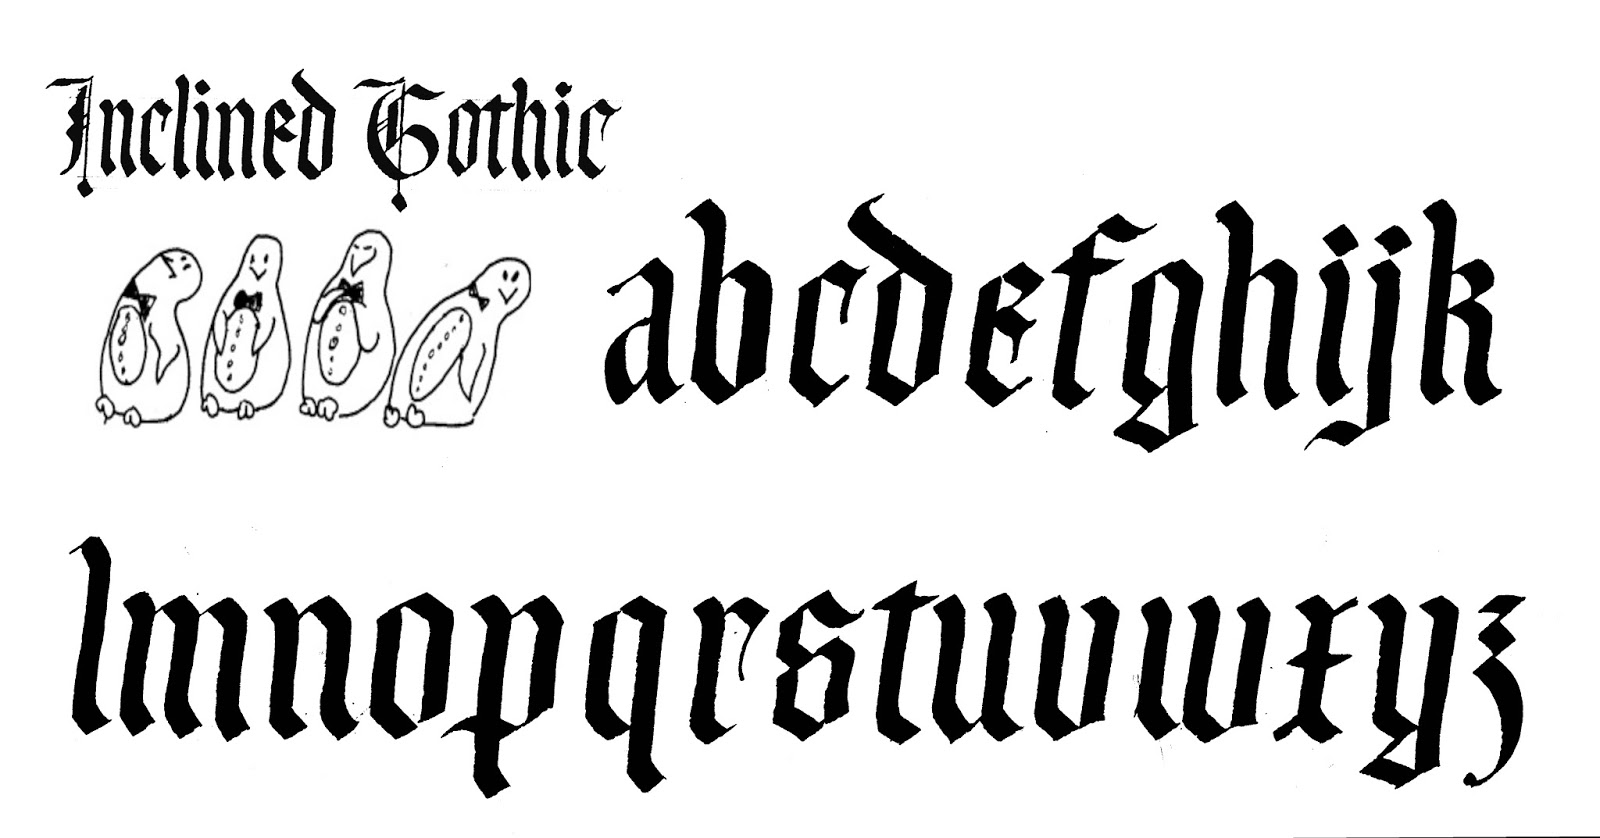 Margaret shepherd calligraphy inclined gothic